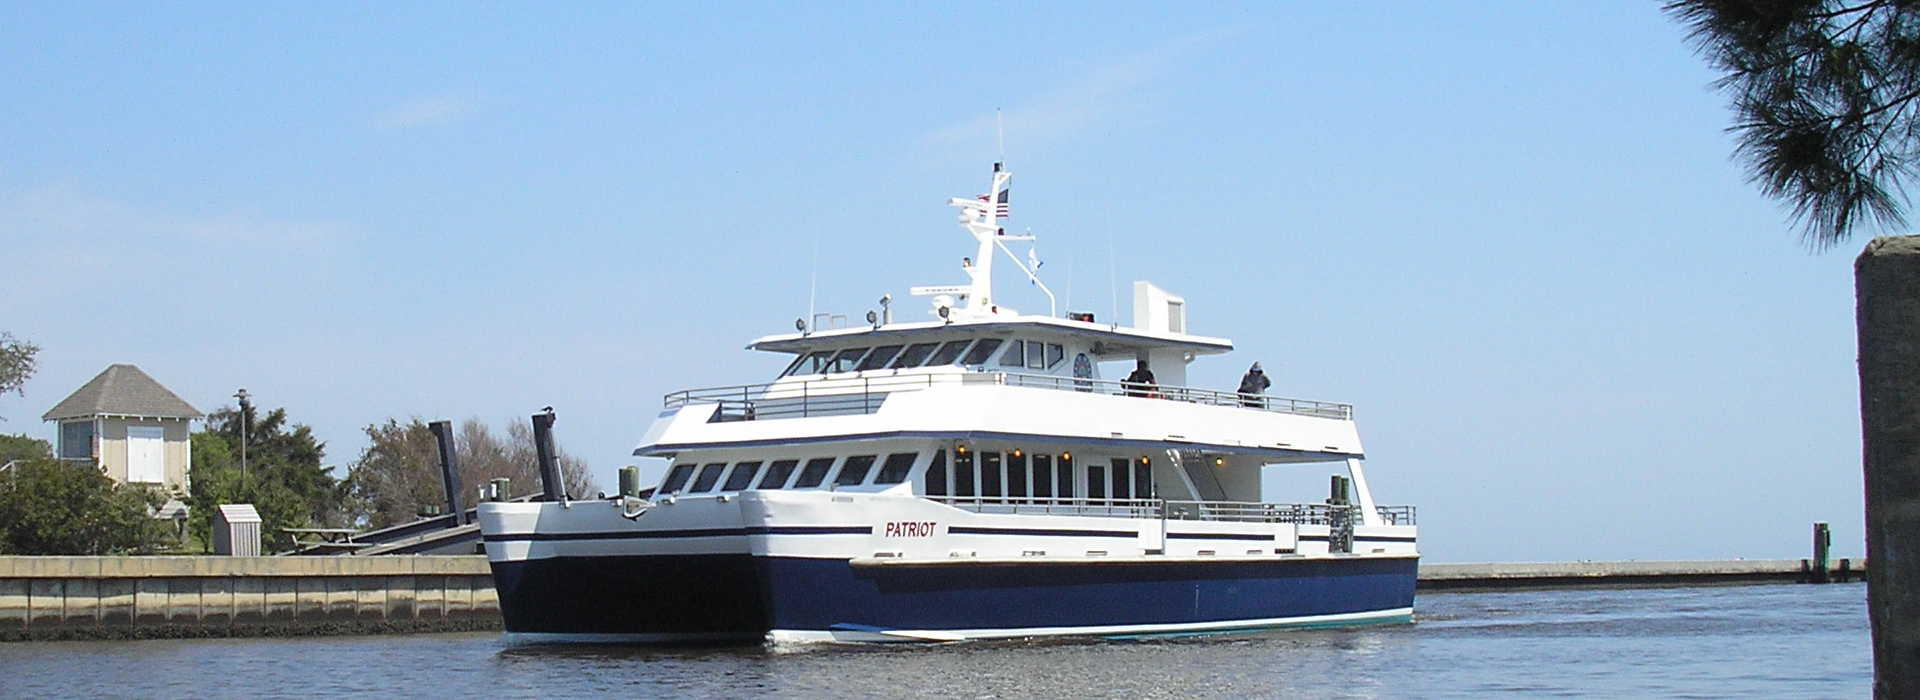 Bald Head Island Ferry Information